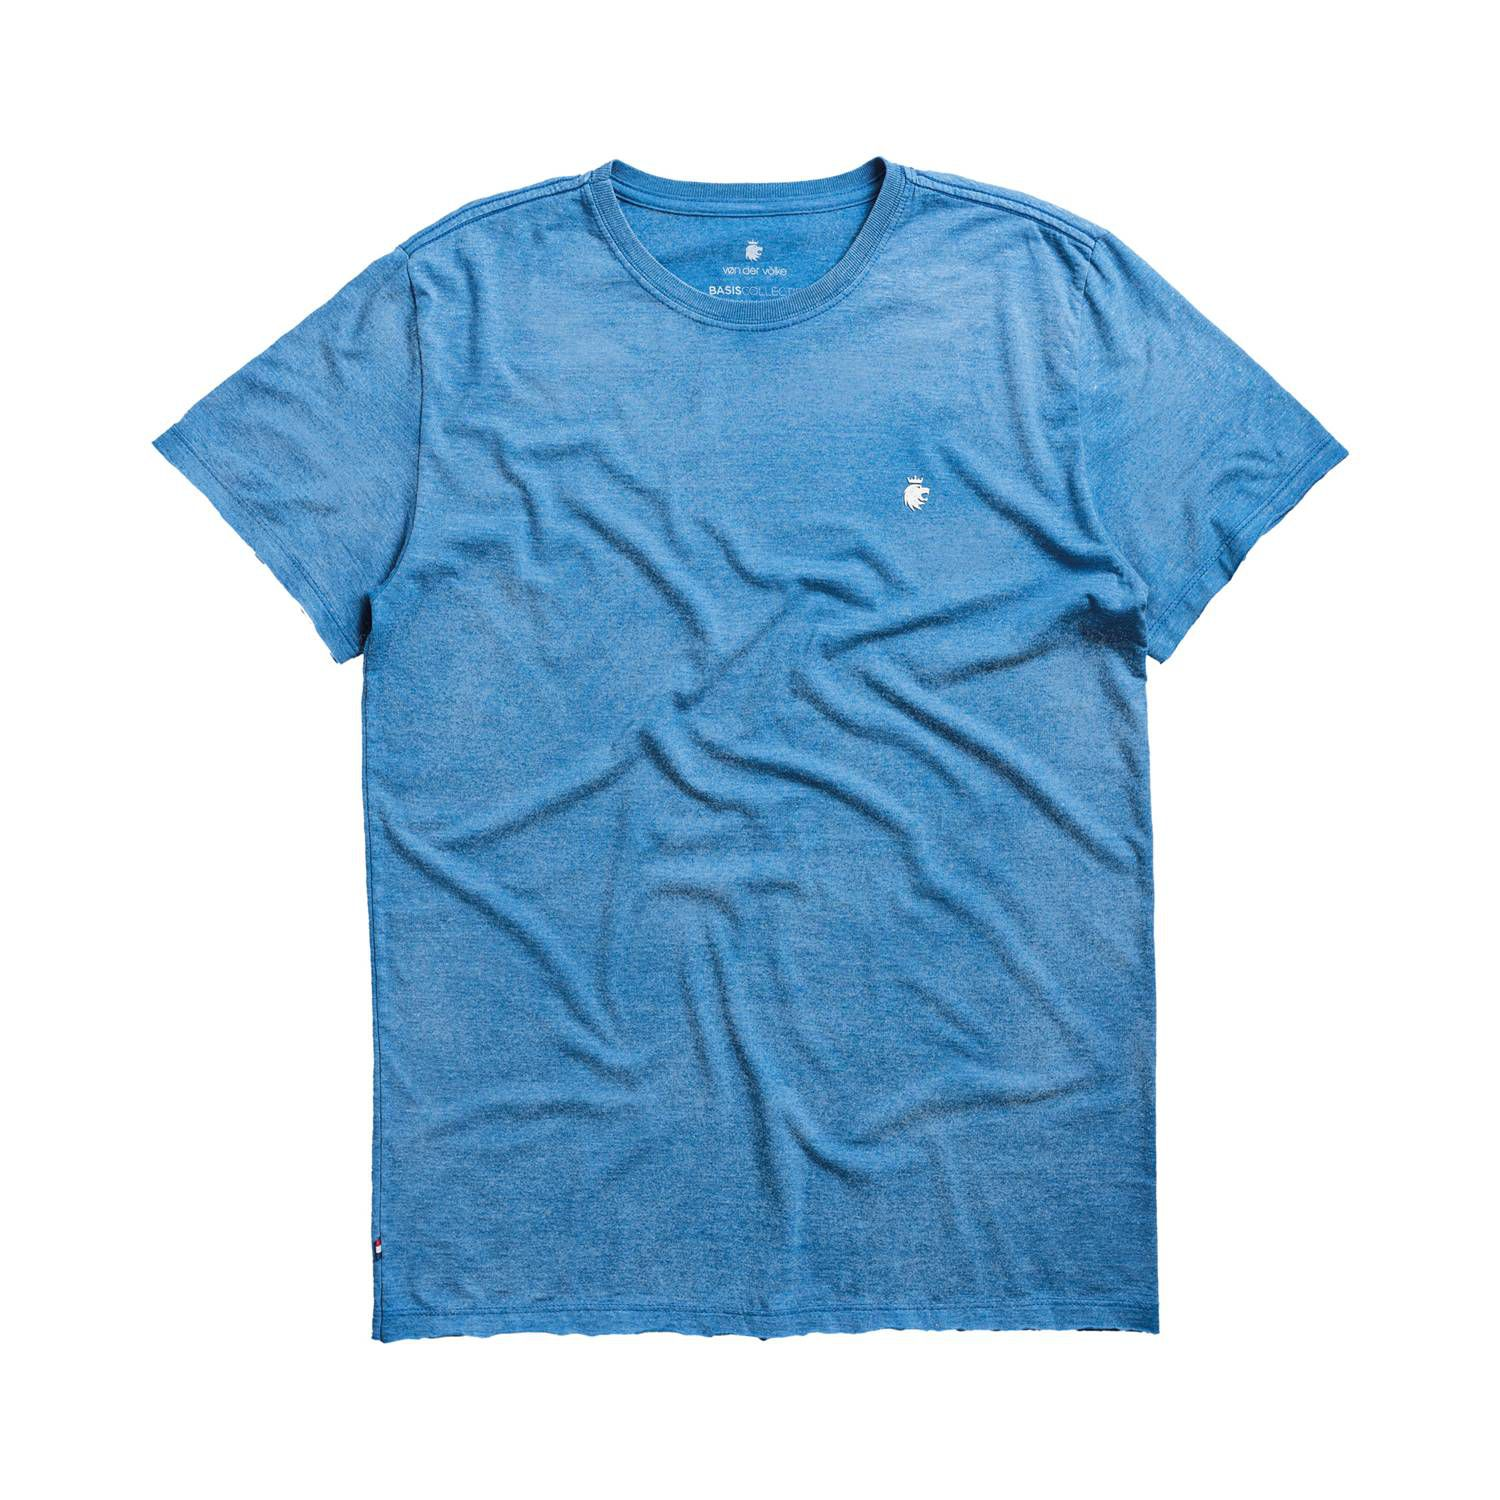 T-shirt Von Der Volke Basis Devore - Azul Royal